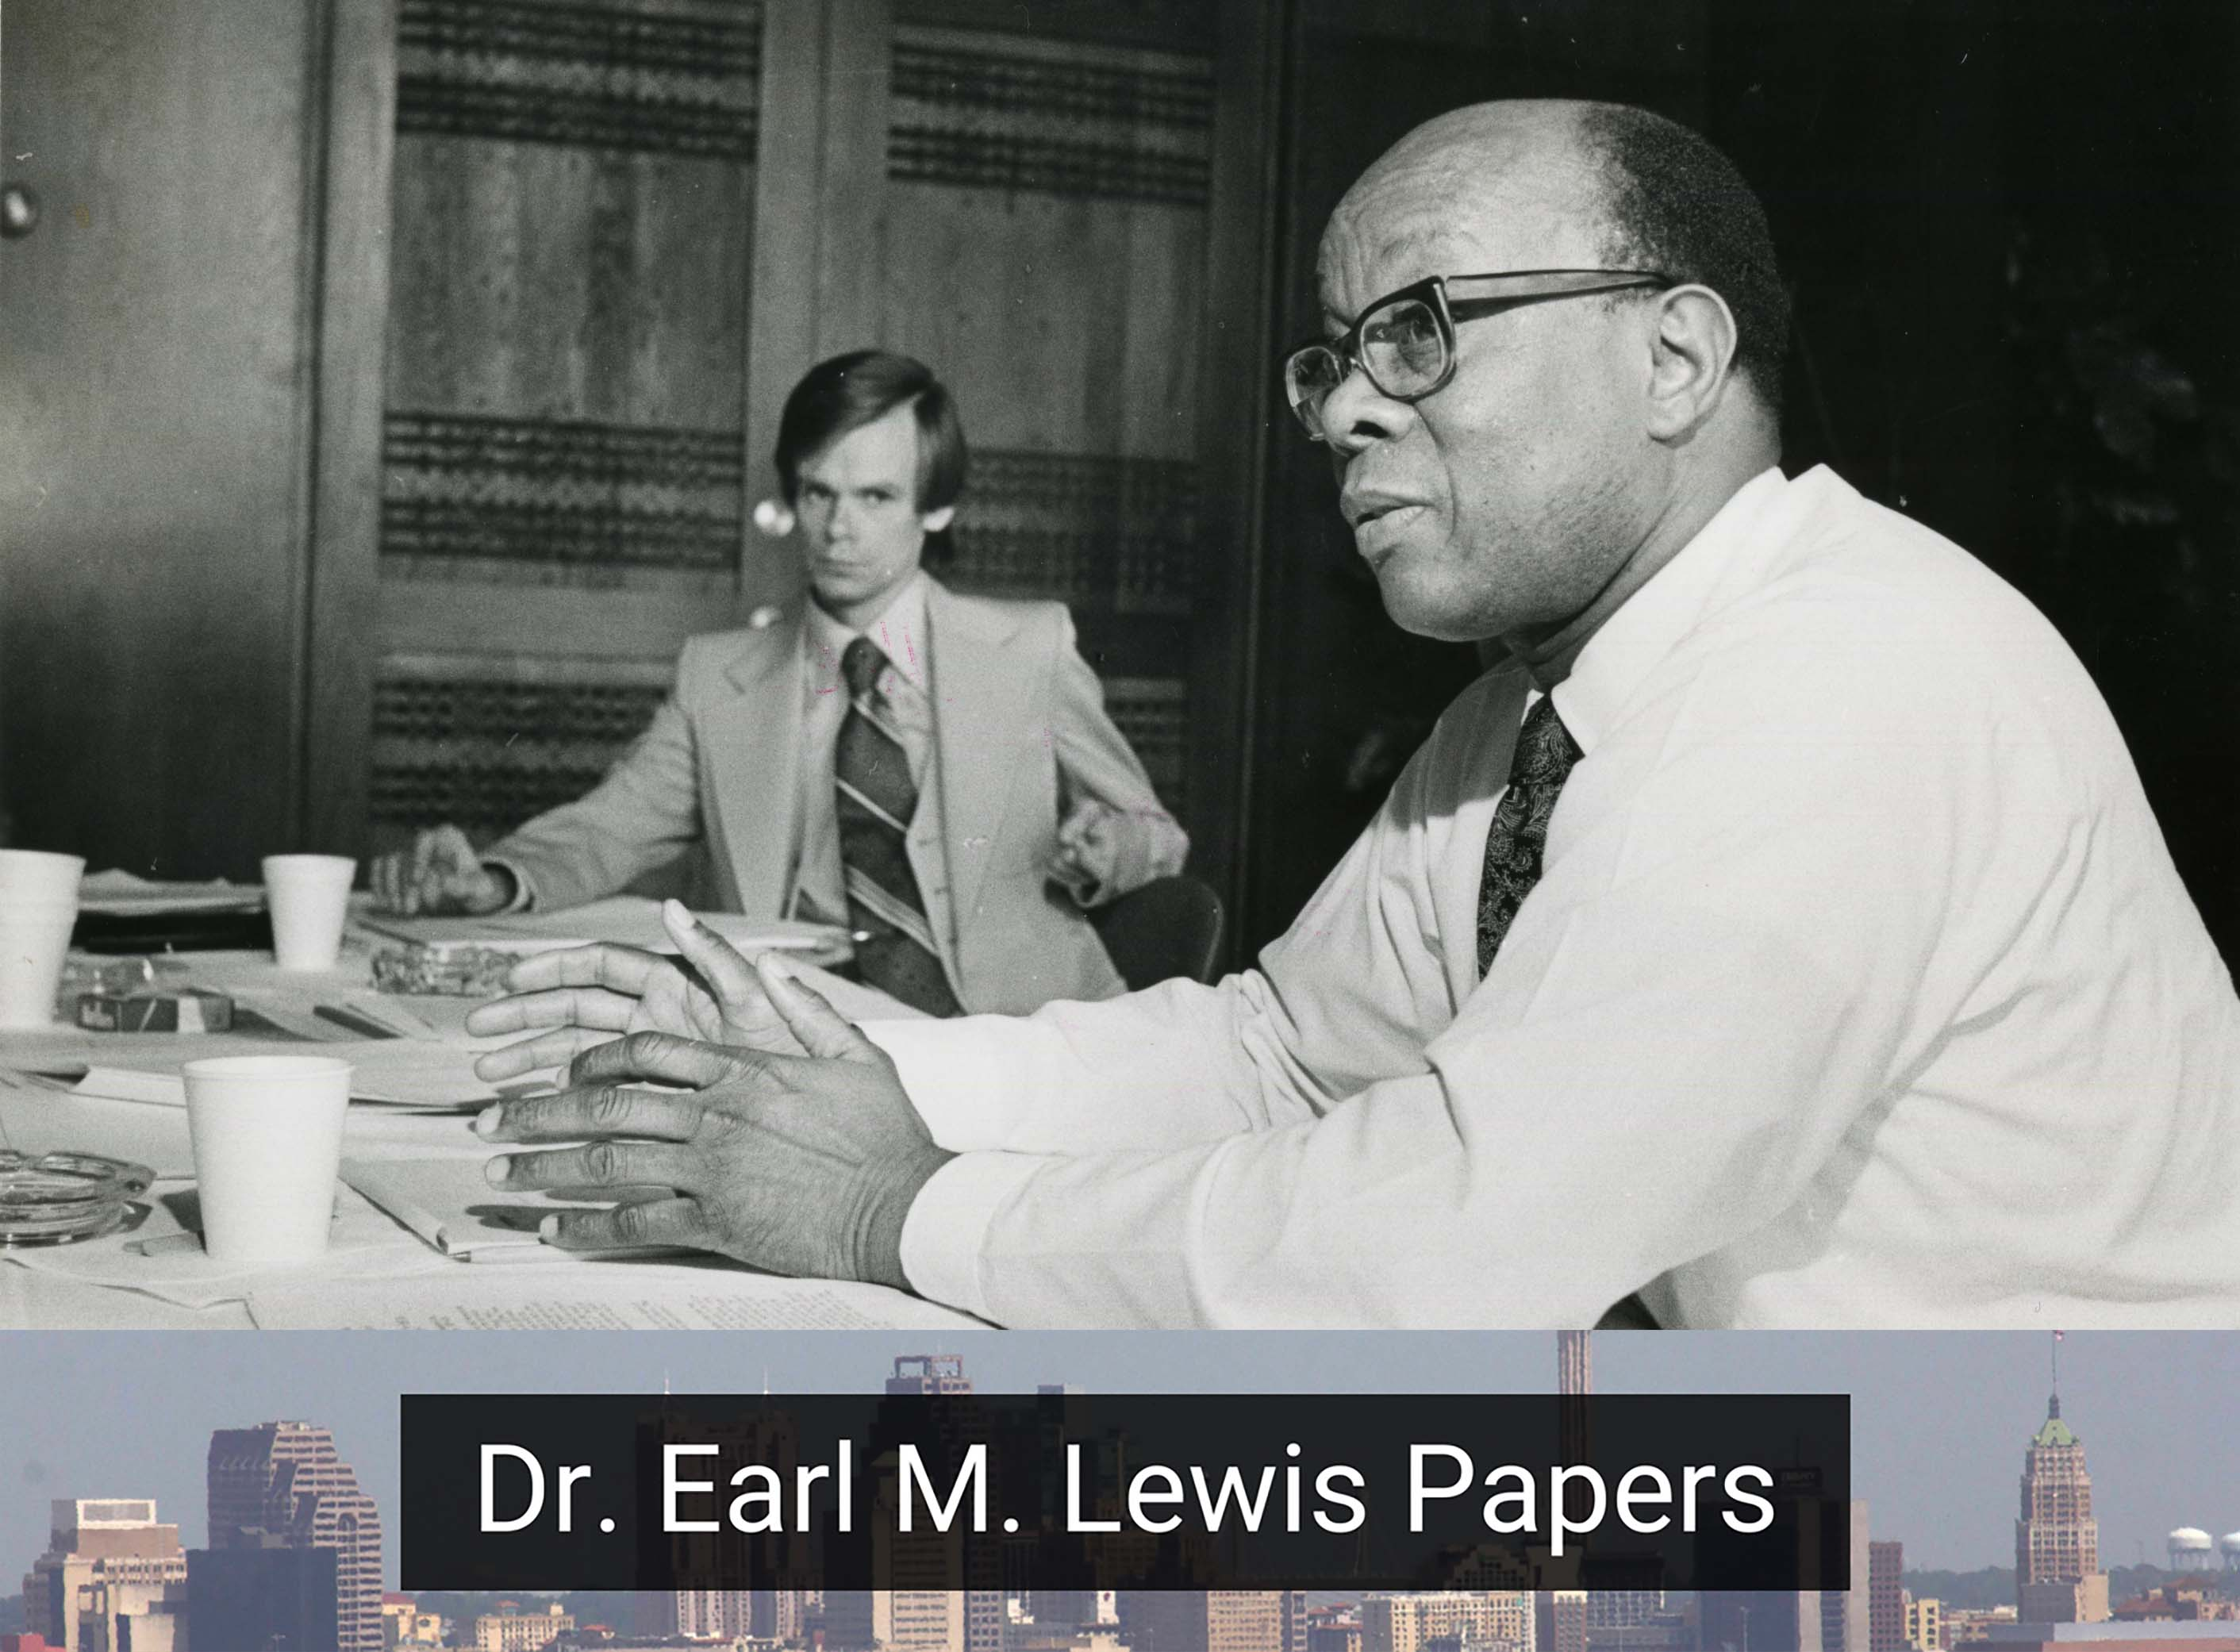 Image of Dr. Ear M. Lewis sitting at a table during an Urban Studies Seminar